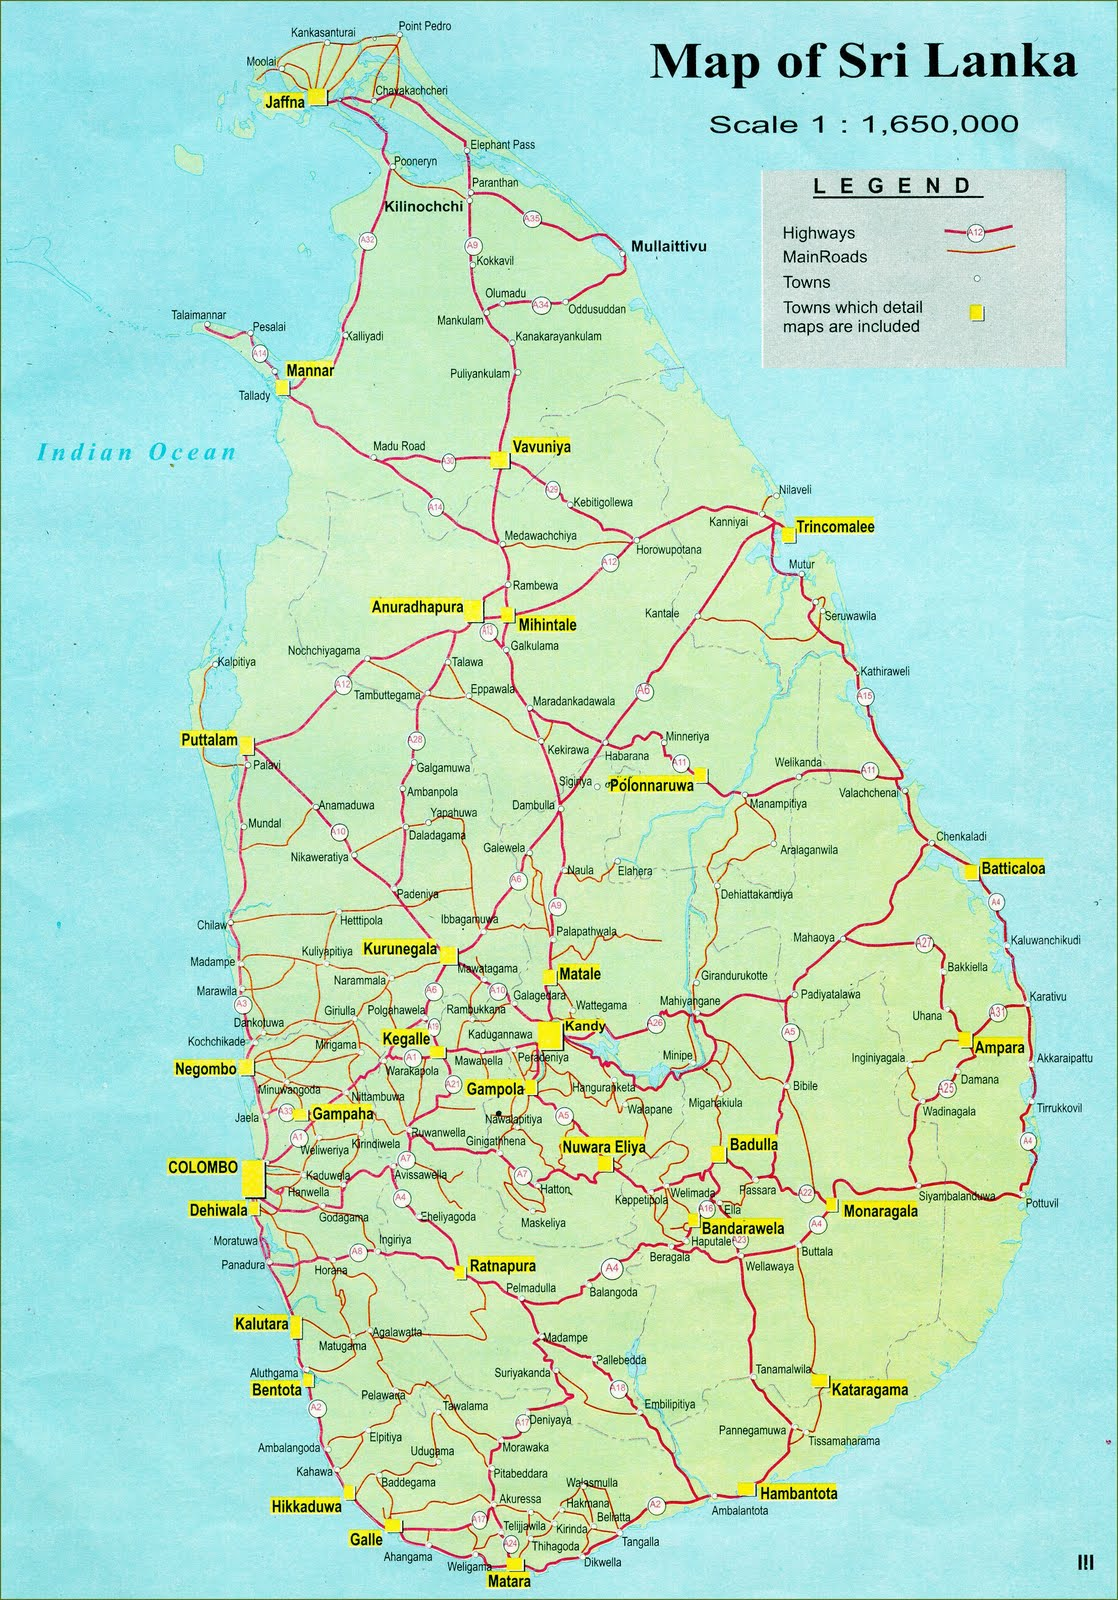 develop tourism in sri lanka The sri lanka tourism development authority the burgeoning demand from tourism will sri lanka remain a budget destination or transform 4 on point real estate in sri lanka - prospects and potential tourist arrivals expected to grow by.